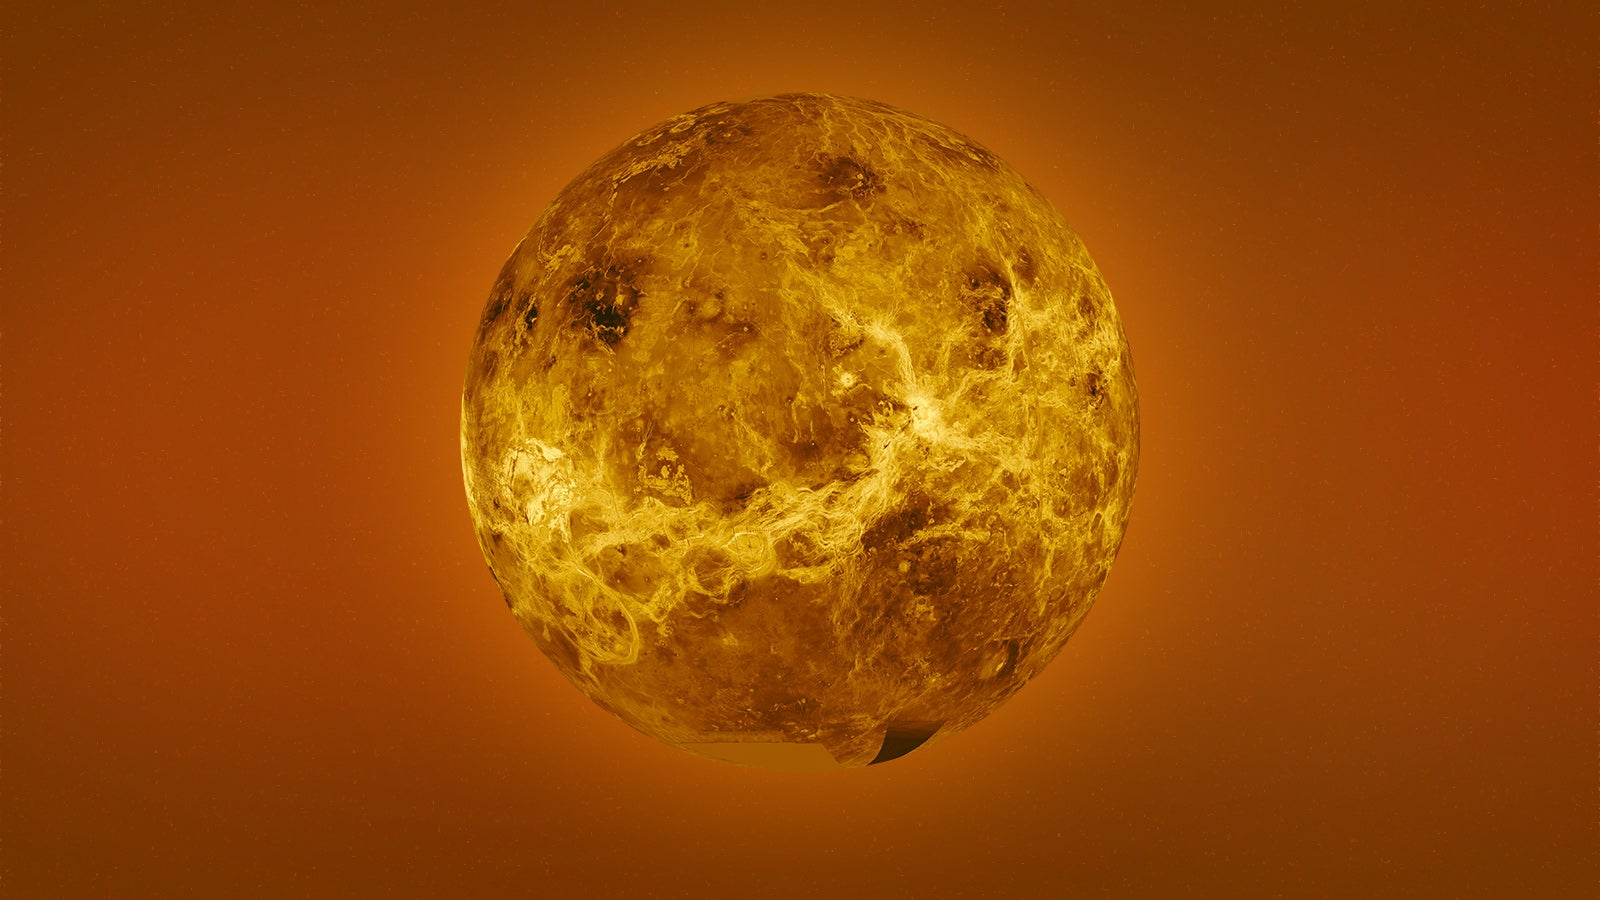 Extreme Weather On Venus Might Change The Length Of Its Days